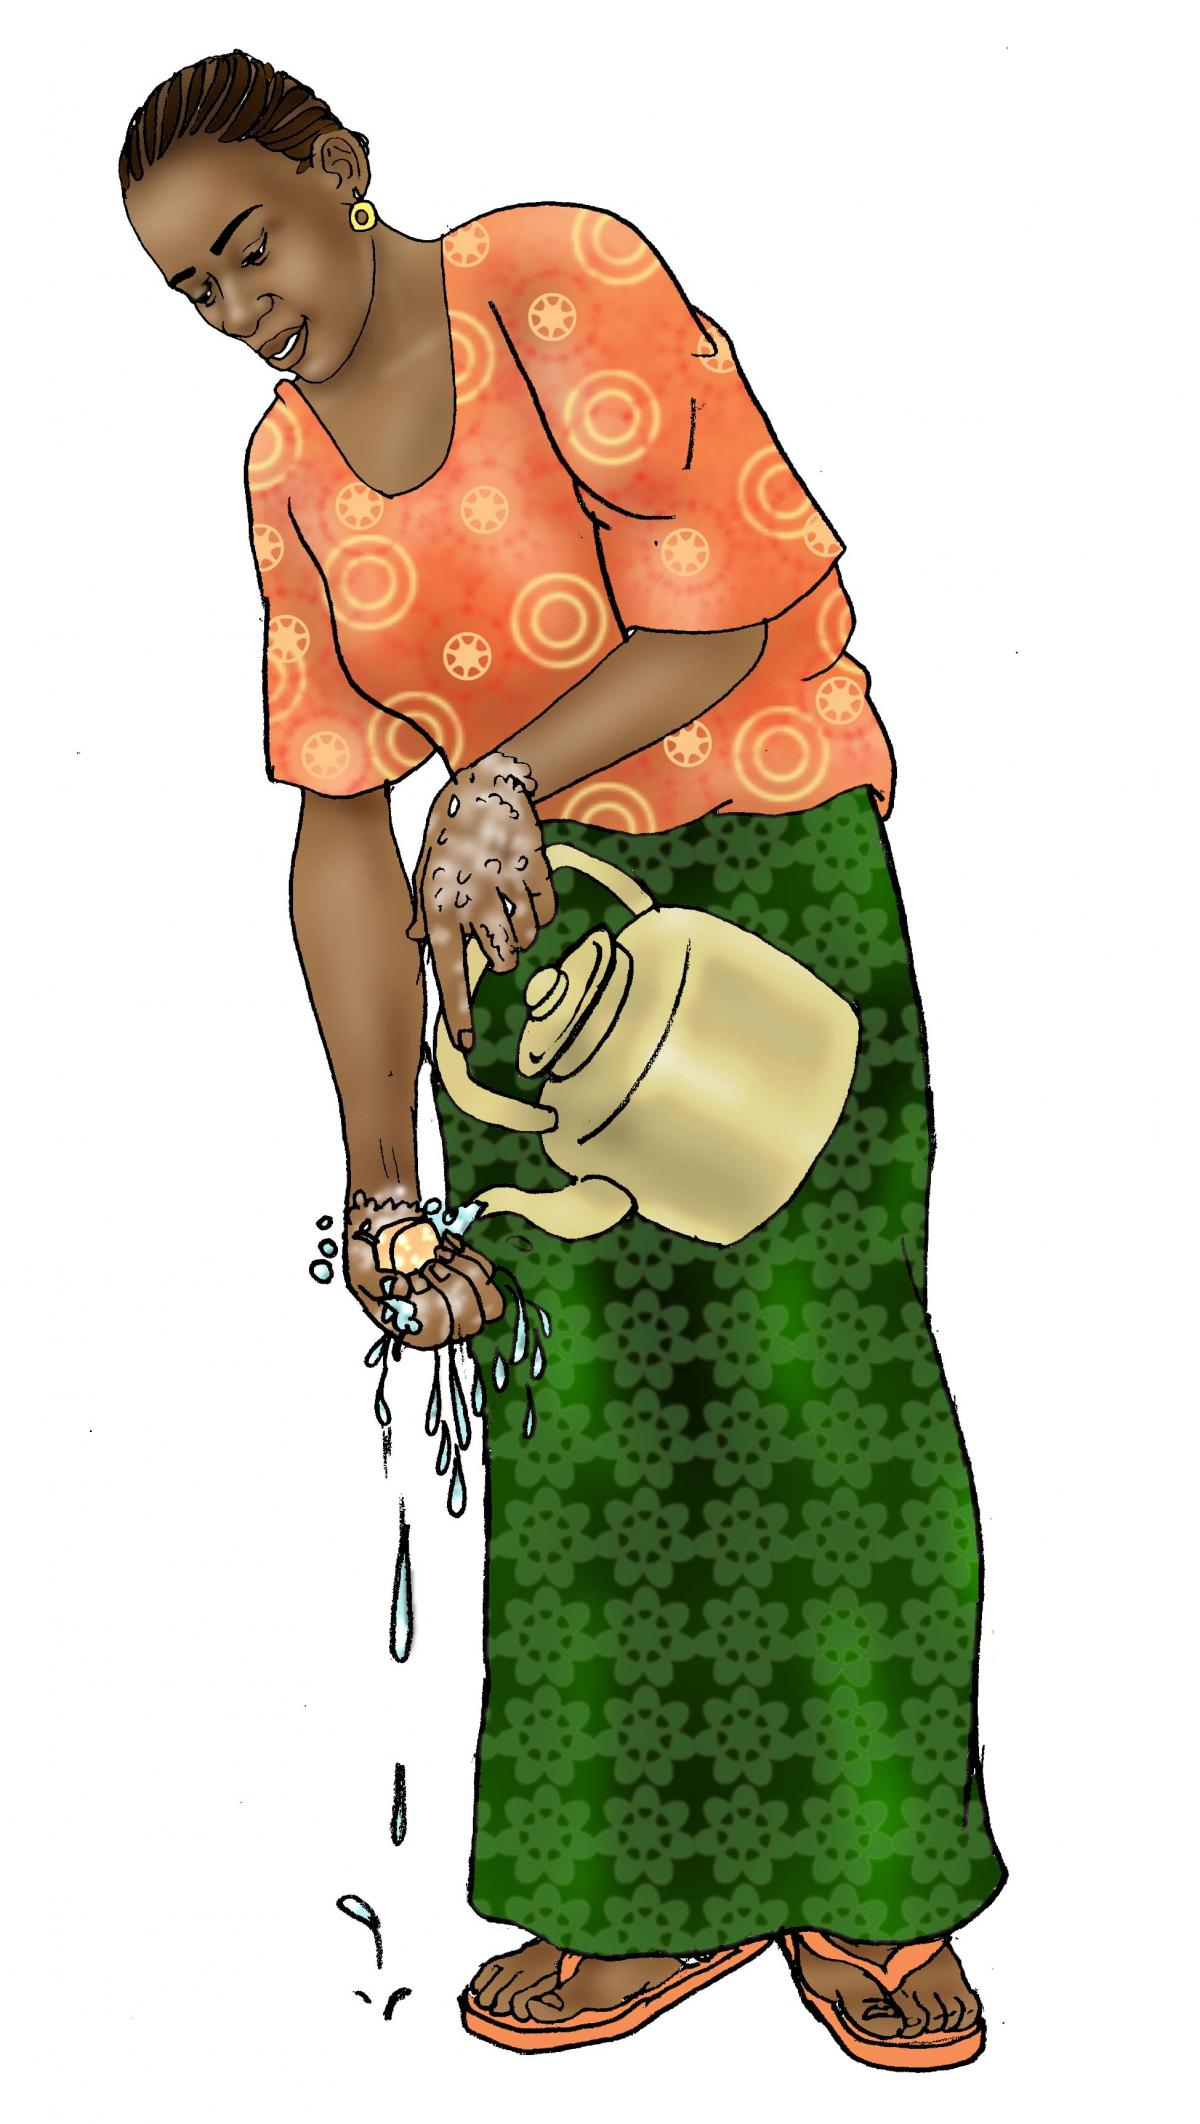 Sanitation - Handwashing - 00B - Niger